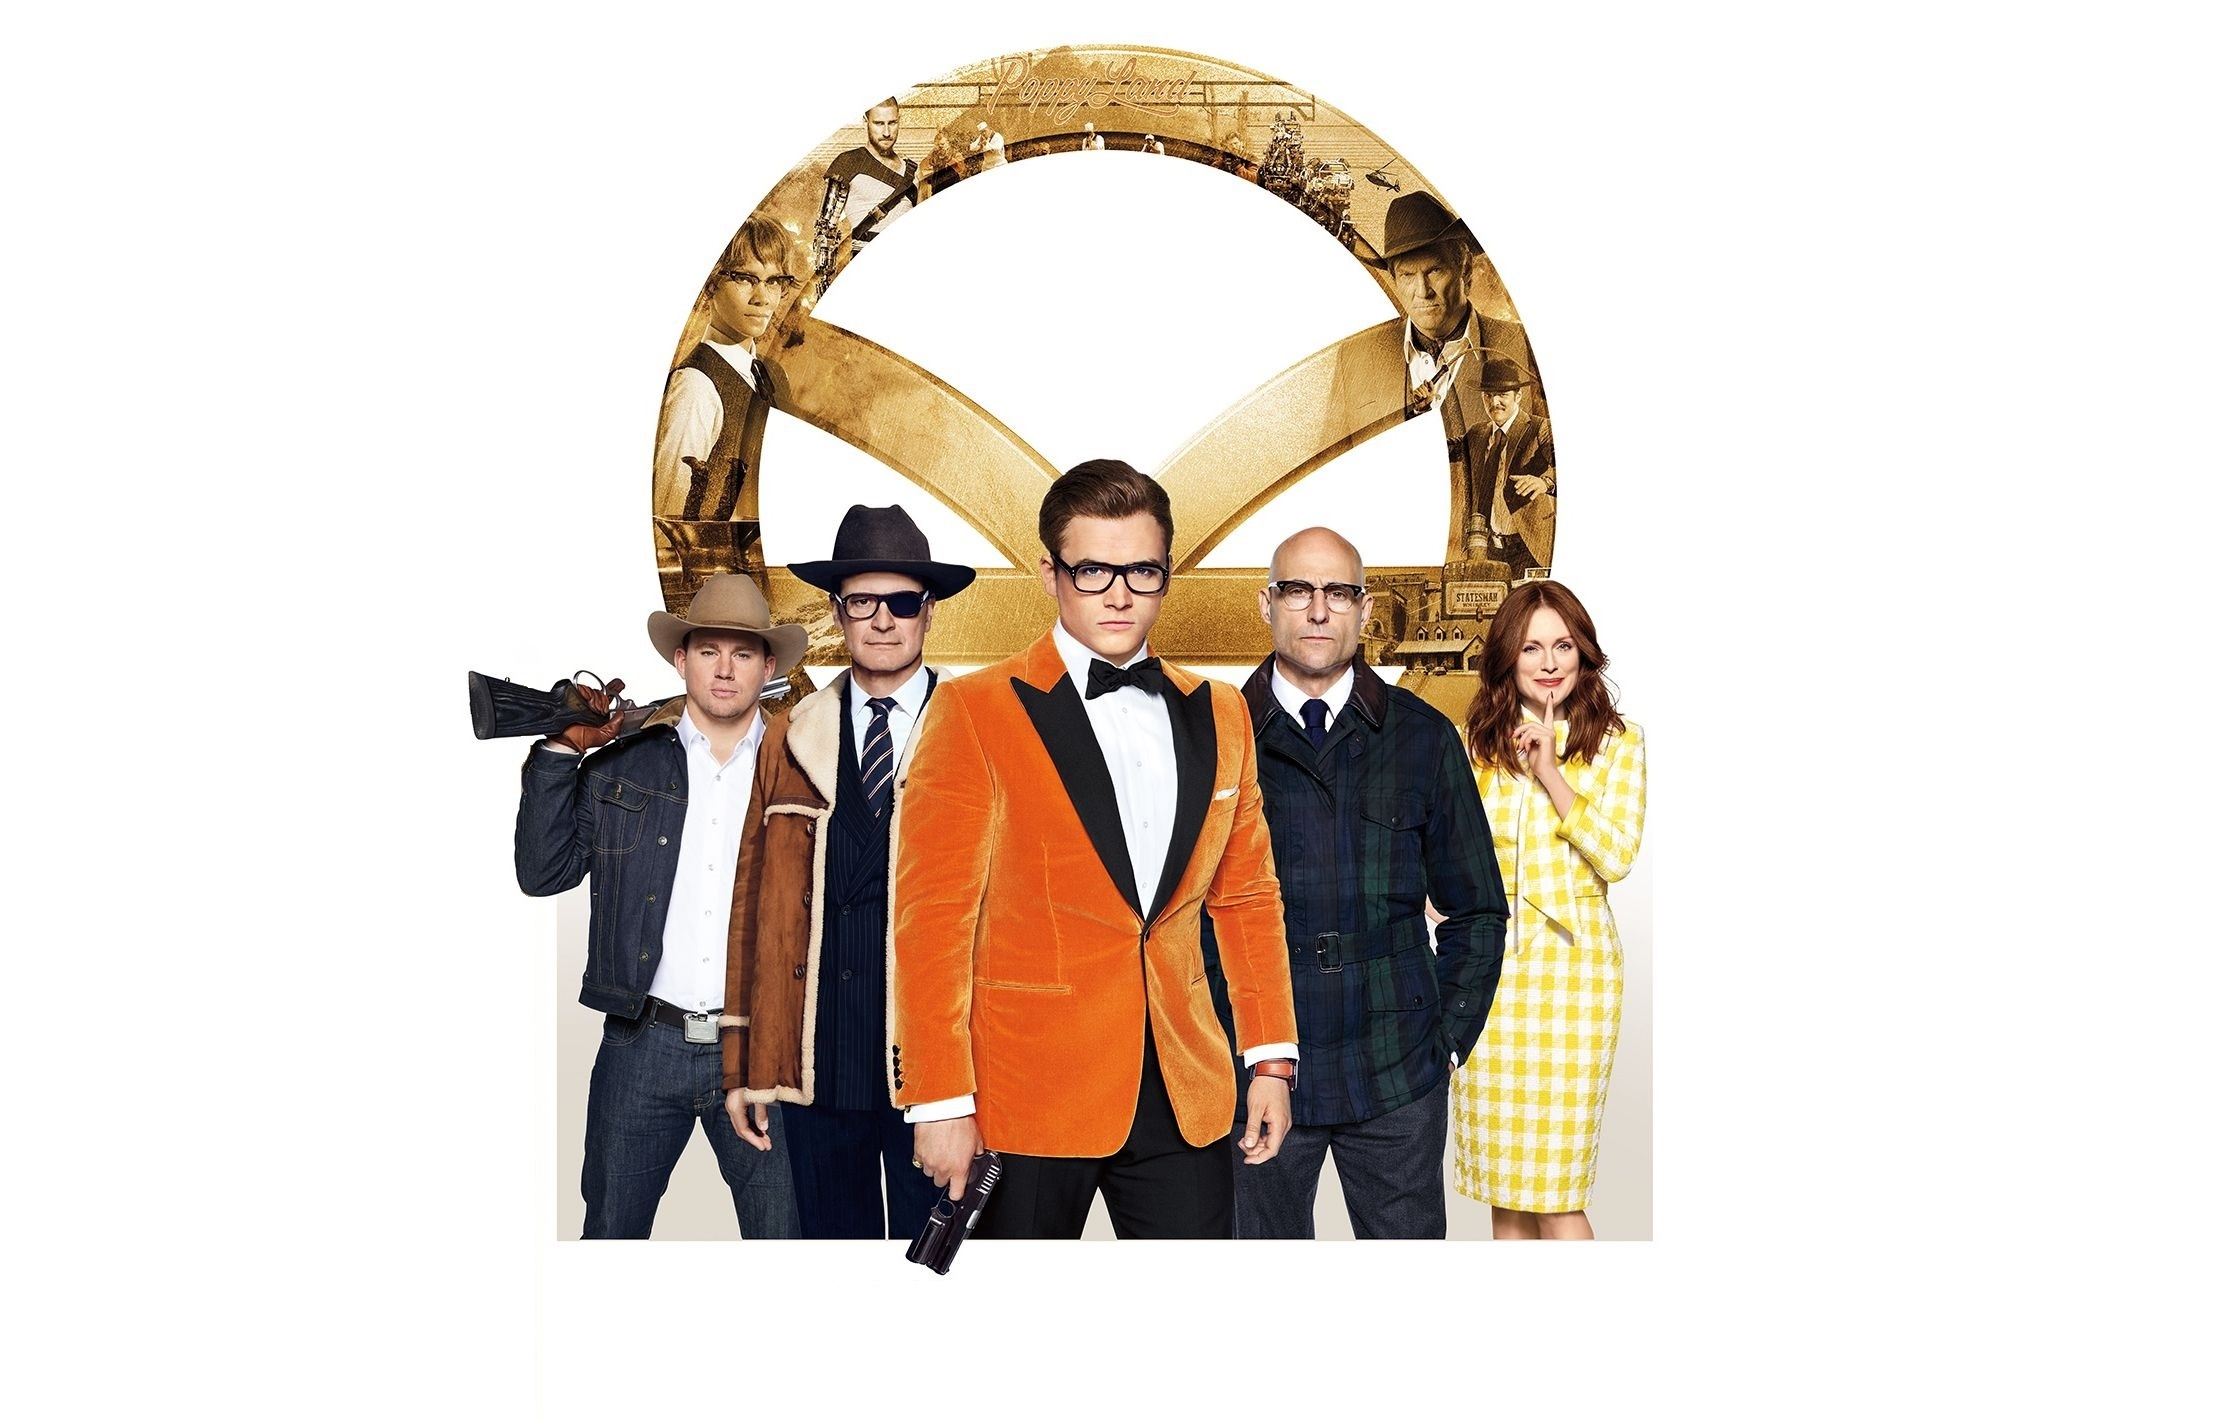 Kingsman The Golden Circle Wallpaper: Kingsman Image